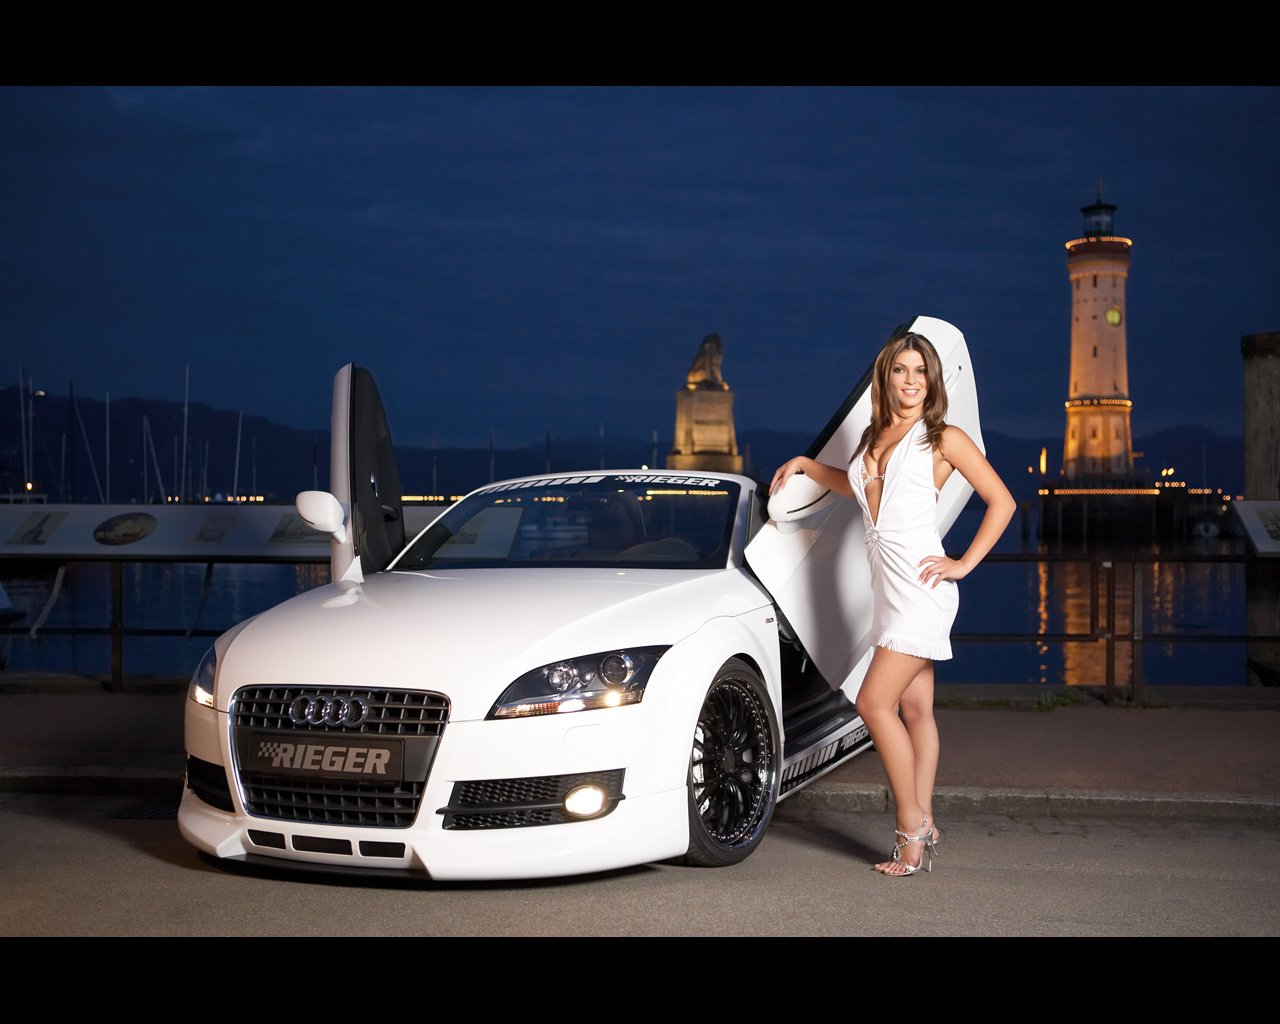 girls and cadillac car wallpapers girls and rieger cars wallpapers 1280x1024